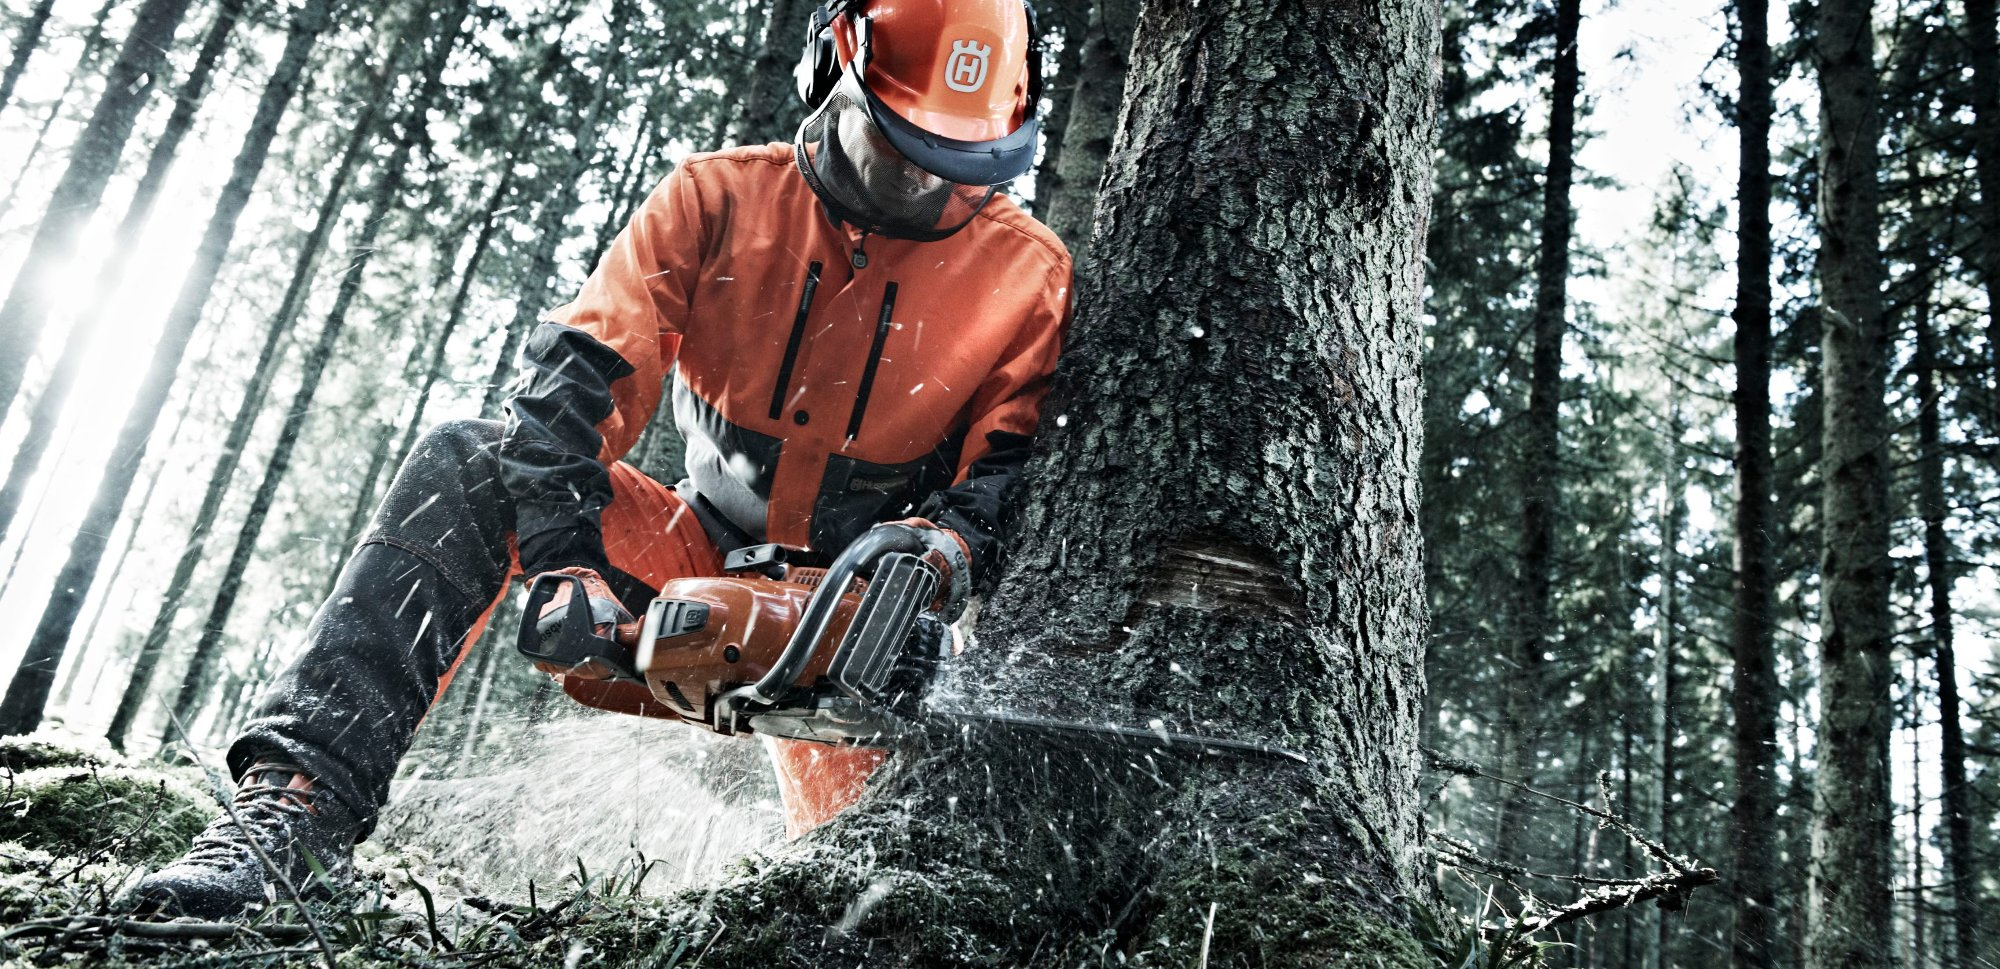 Husqvarna-chainsaw-wood-2